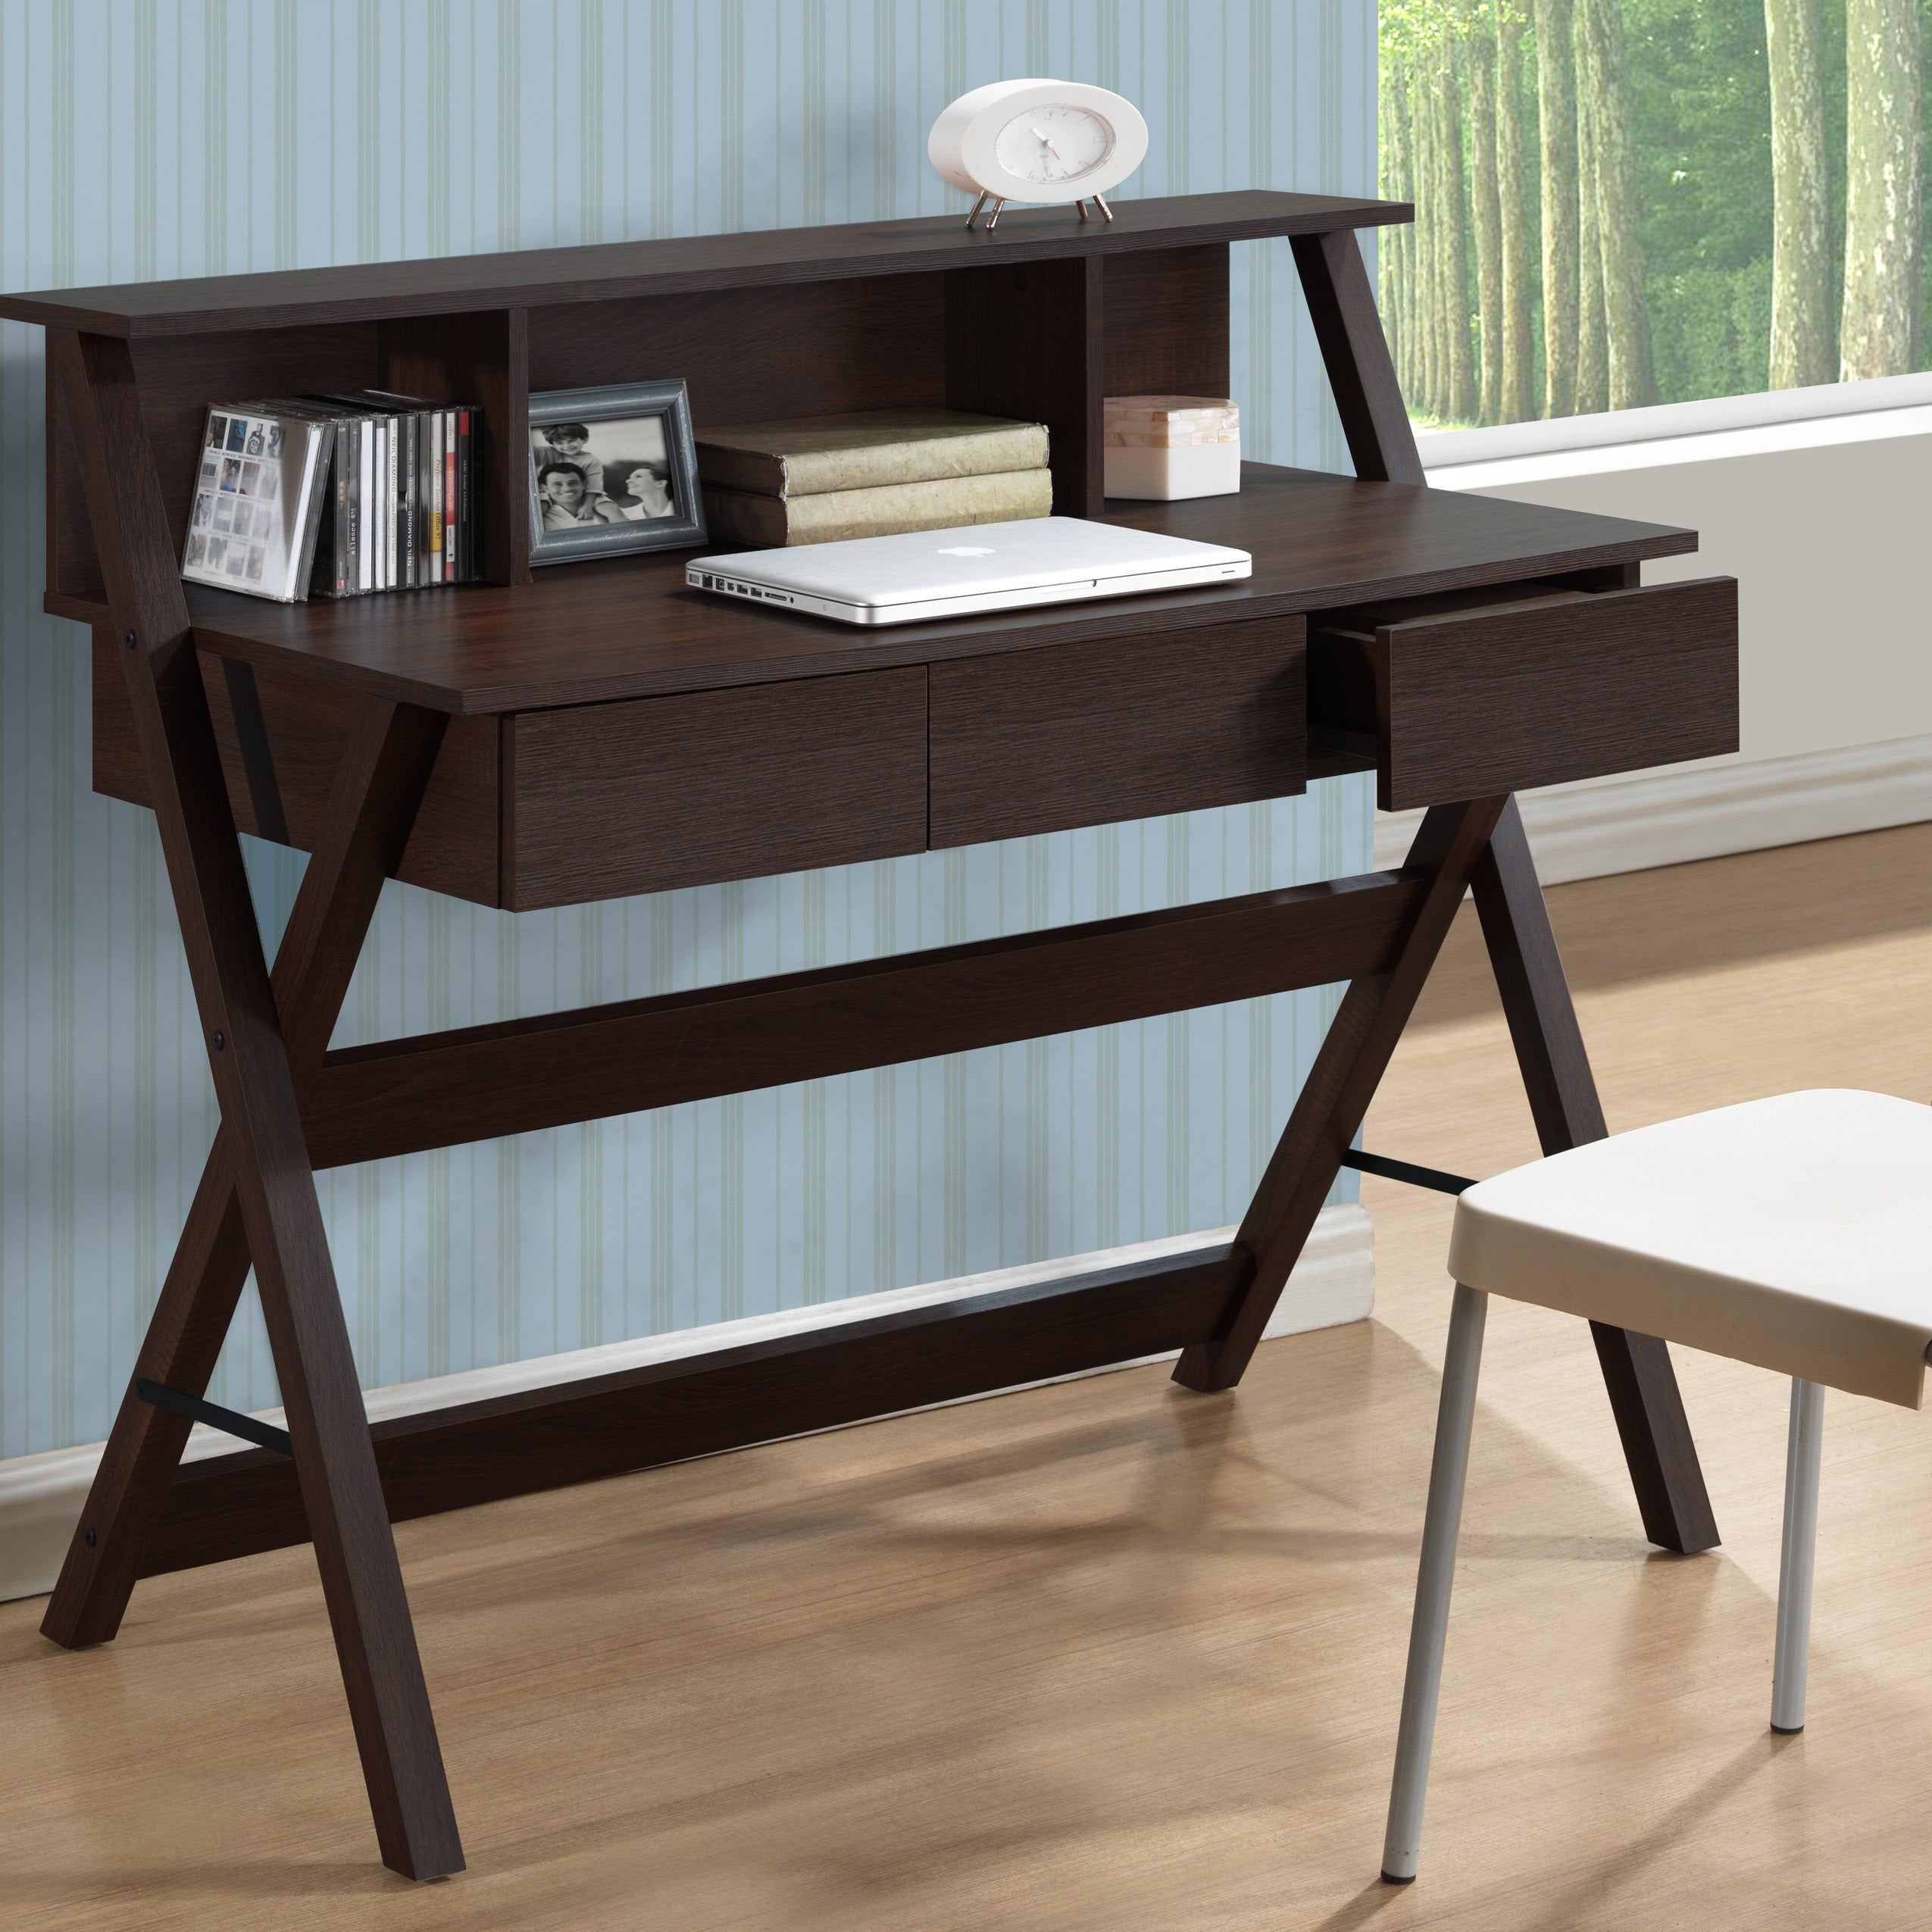 Shop CorLiving Folio Three-drawer Desk with Low Profile Hutch - Free ...